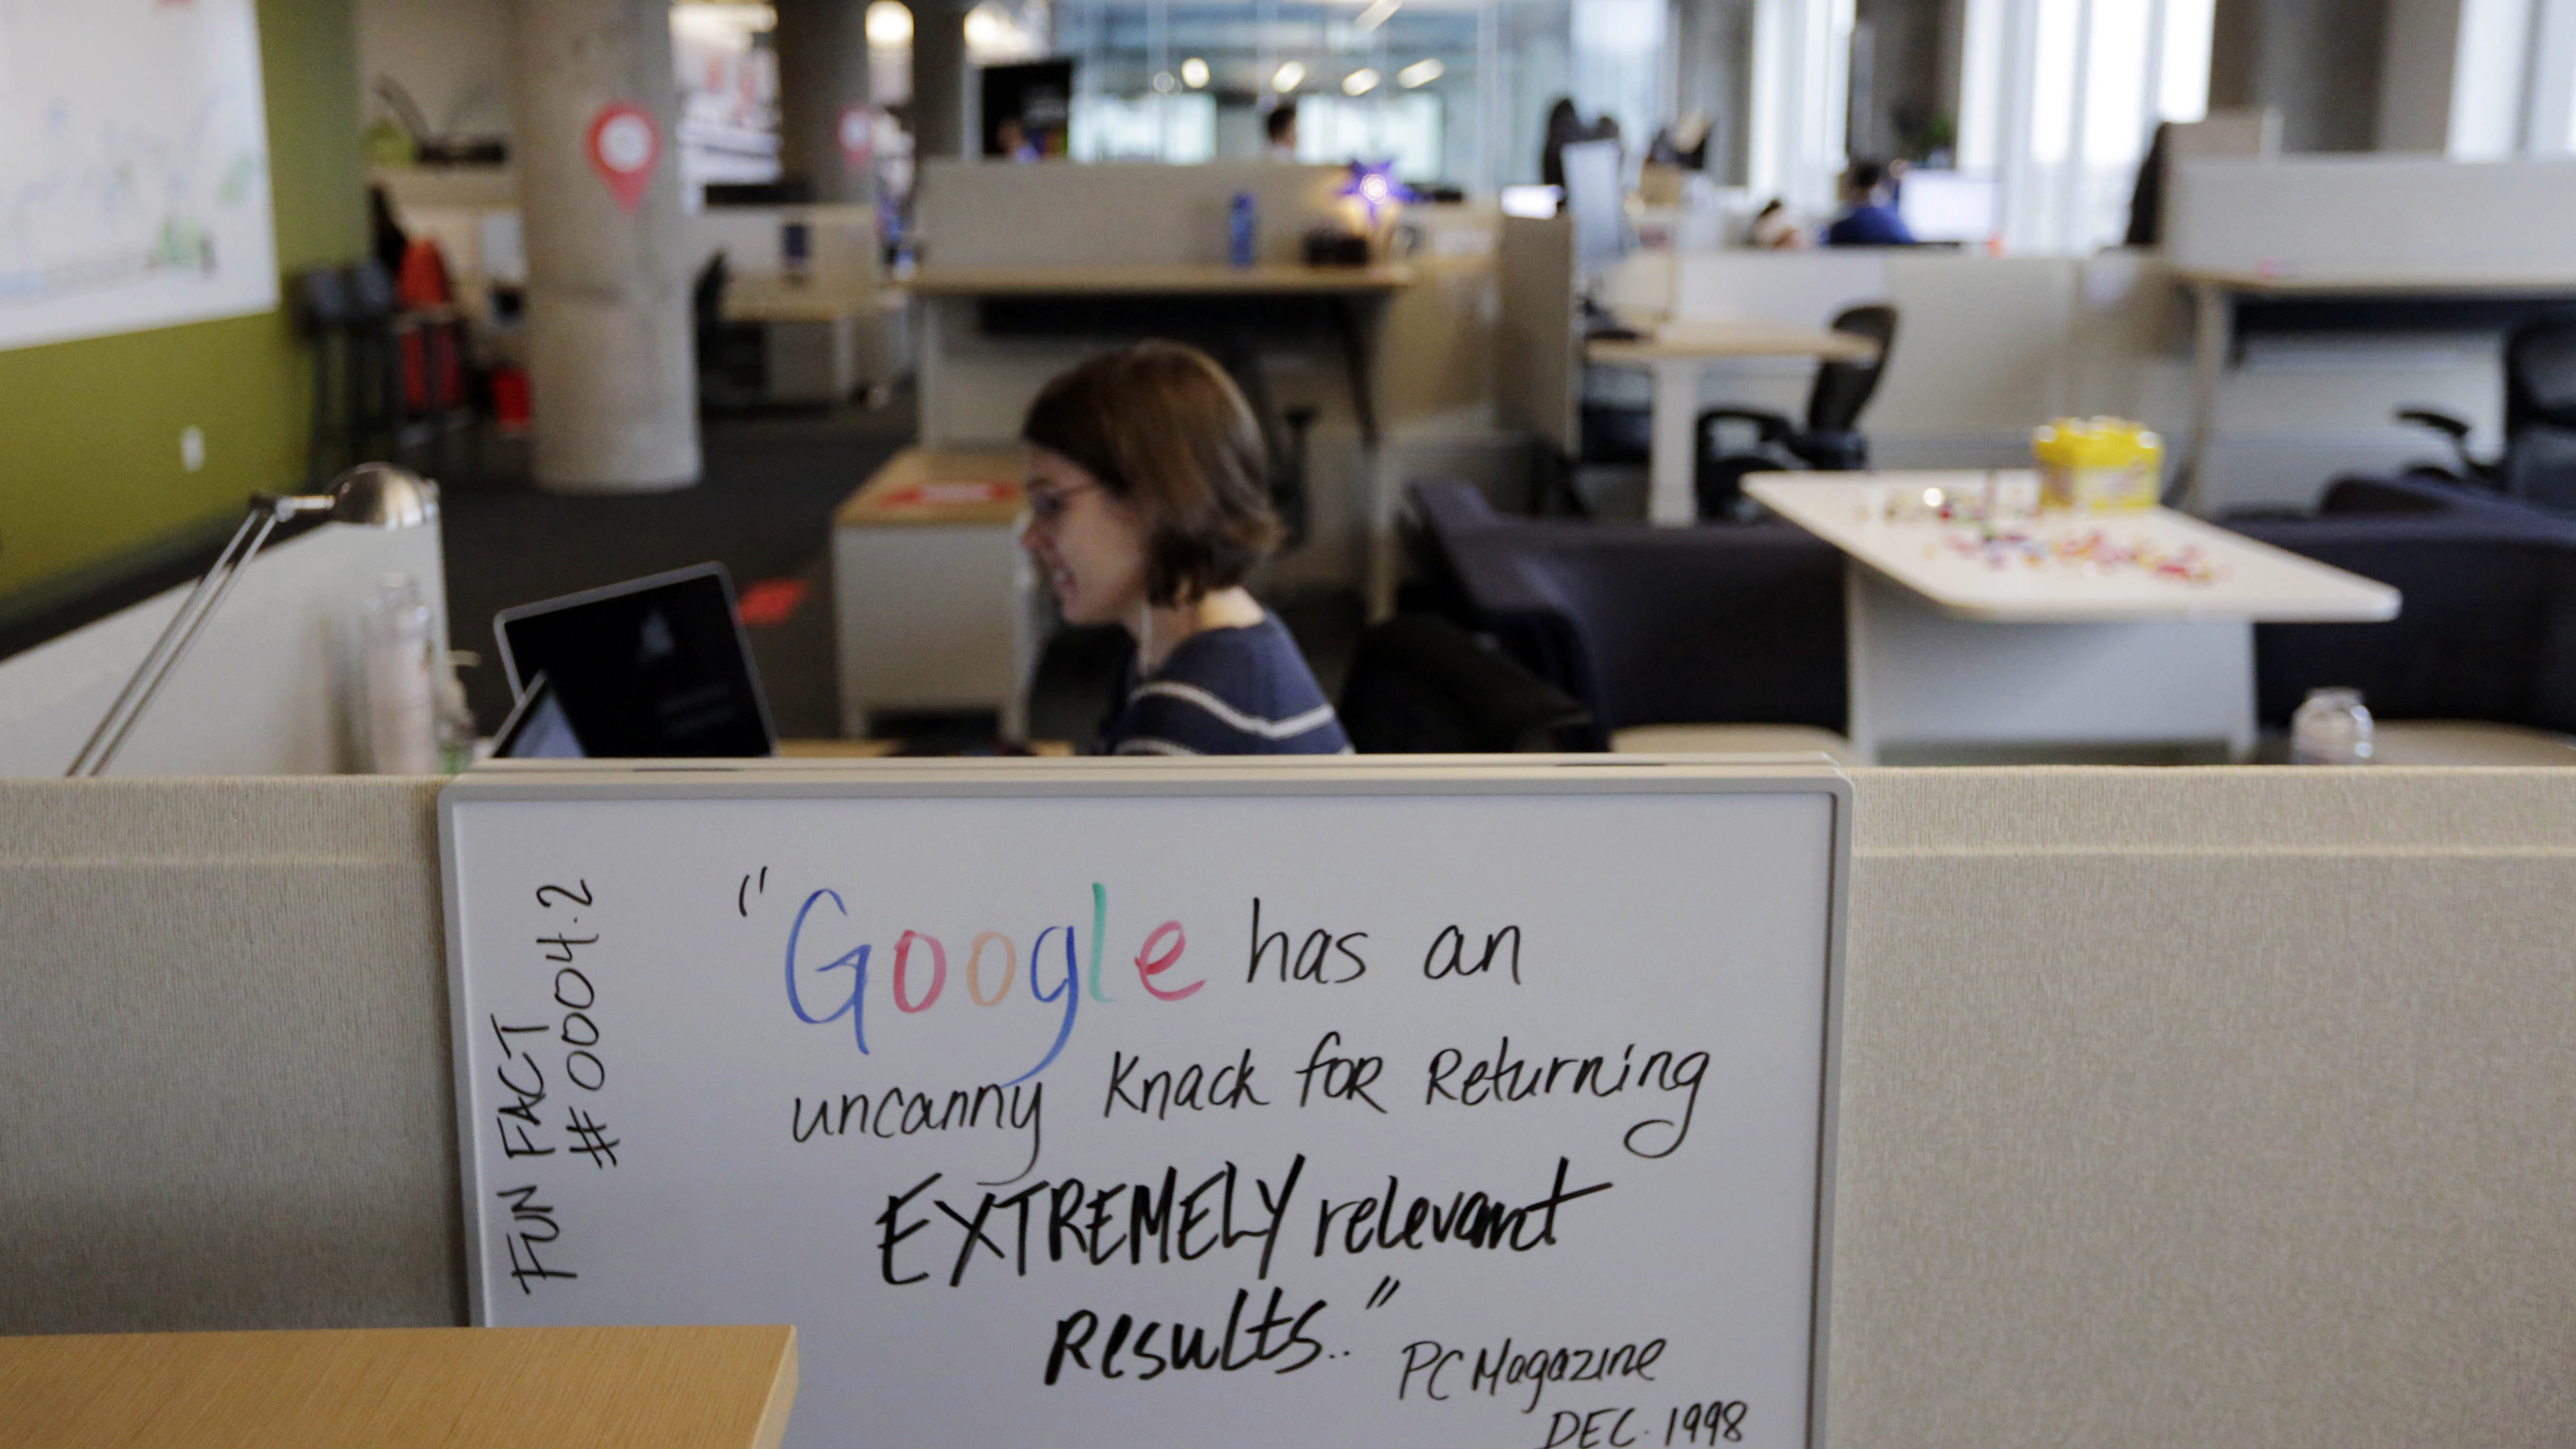 An employee works in the new Google Chicago Headquarters Thursday, Dec. 3, 2015, in Chicago. The new offices occupy about 200,000 square feet and house a staff of around 650 full time employees. (AP Photo/M. Spencer Green)